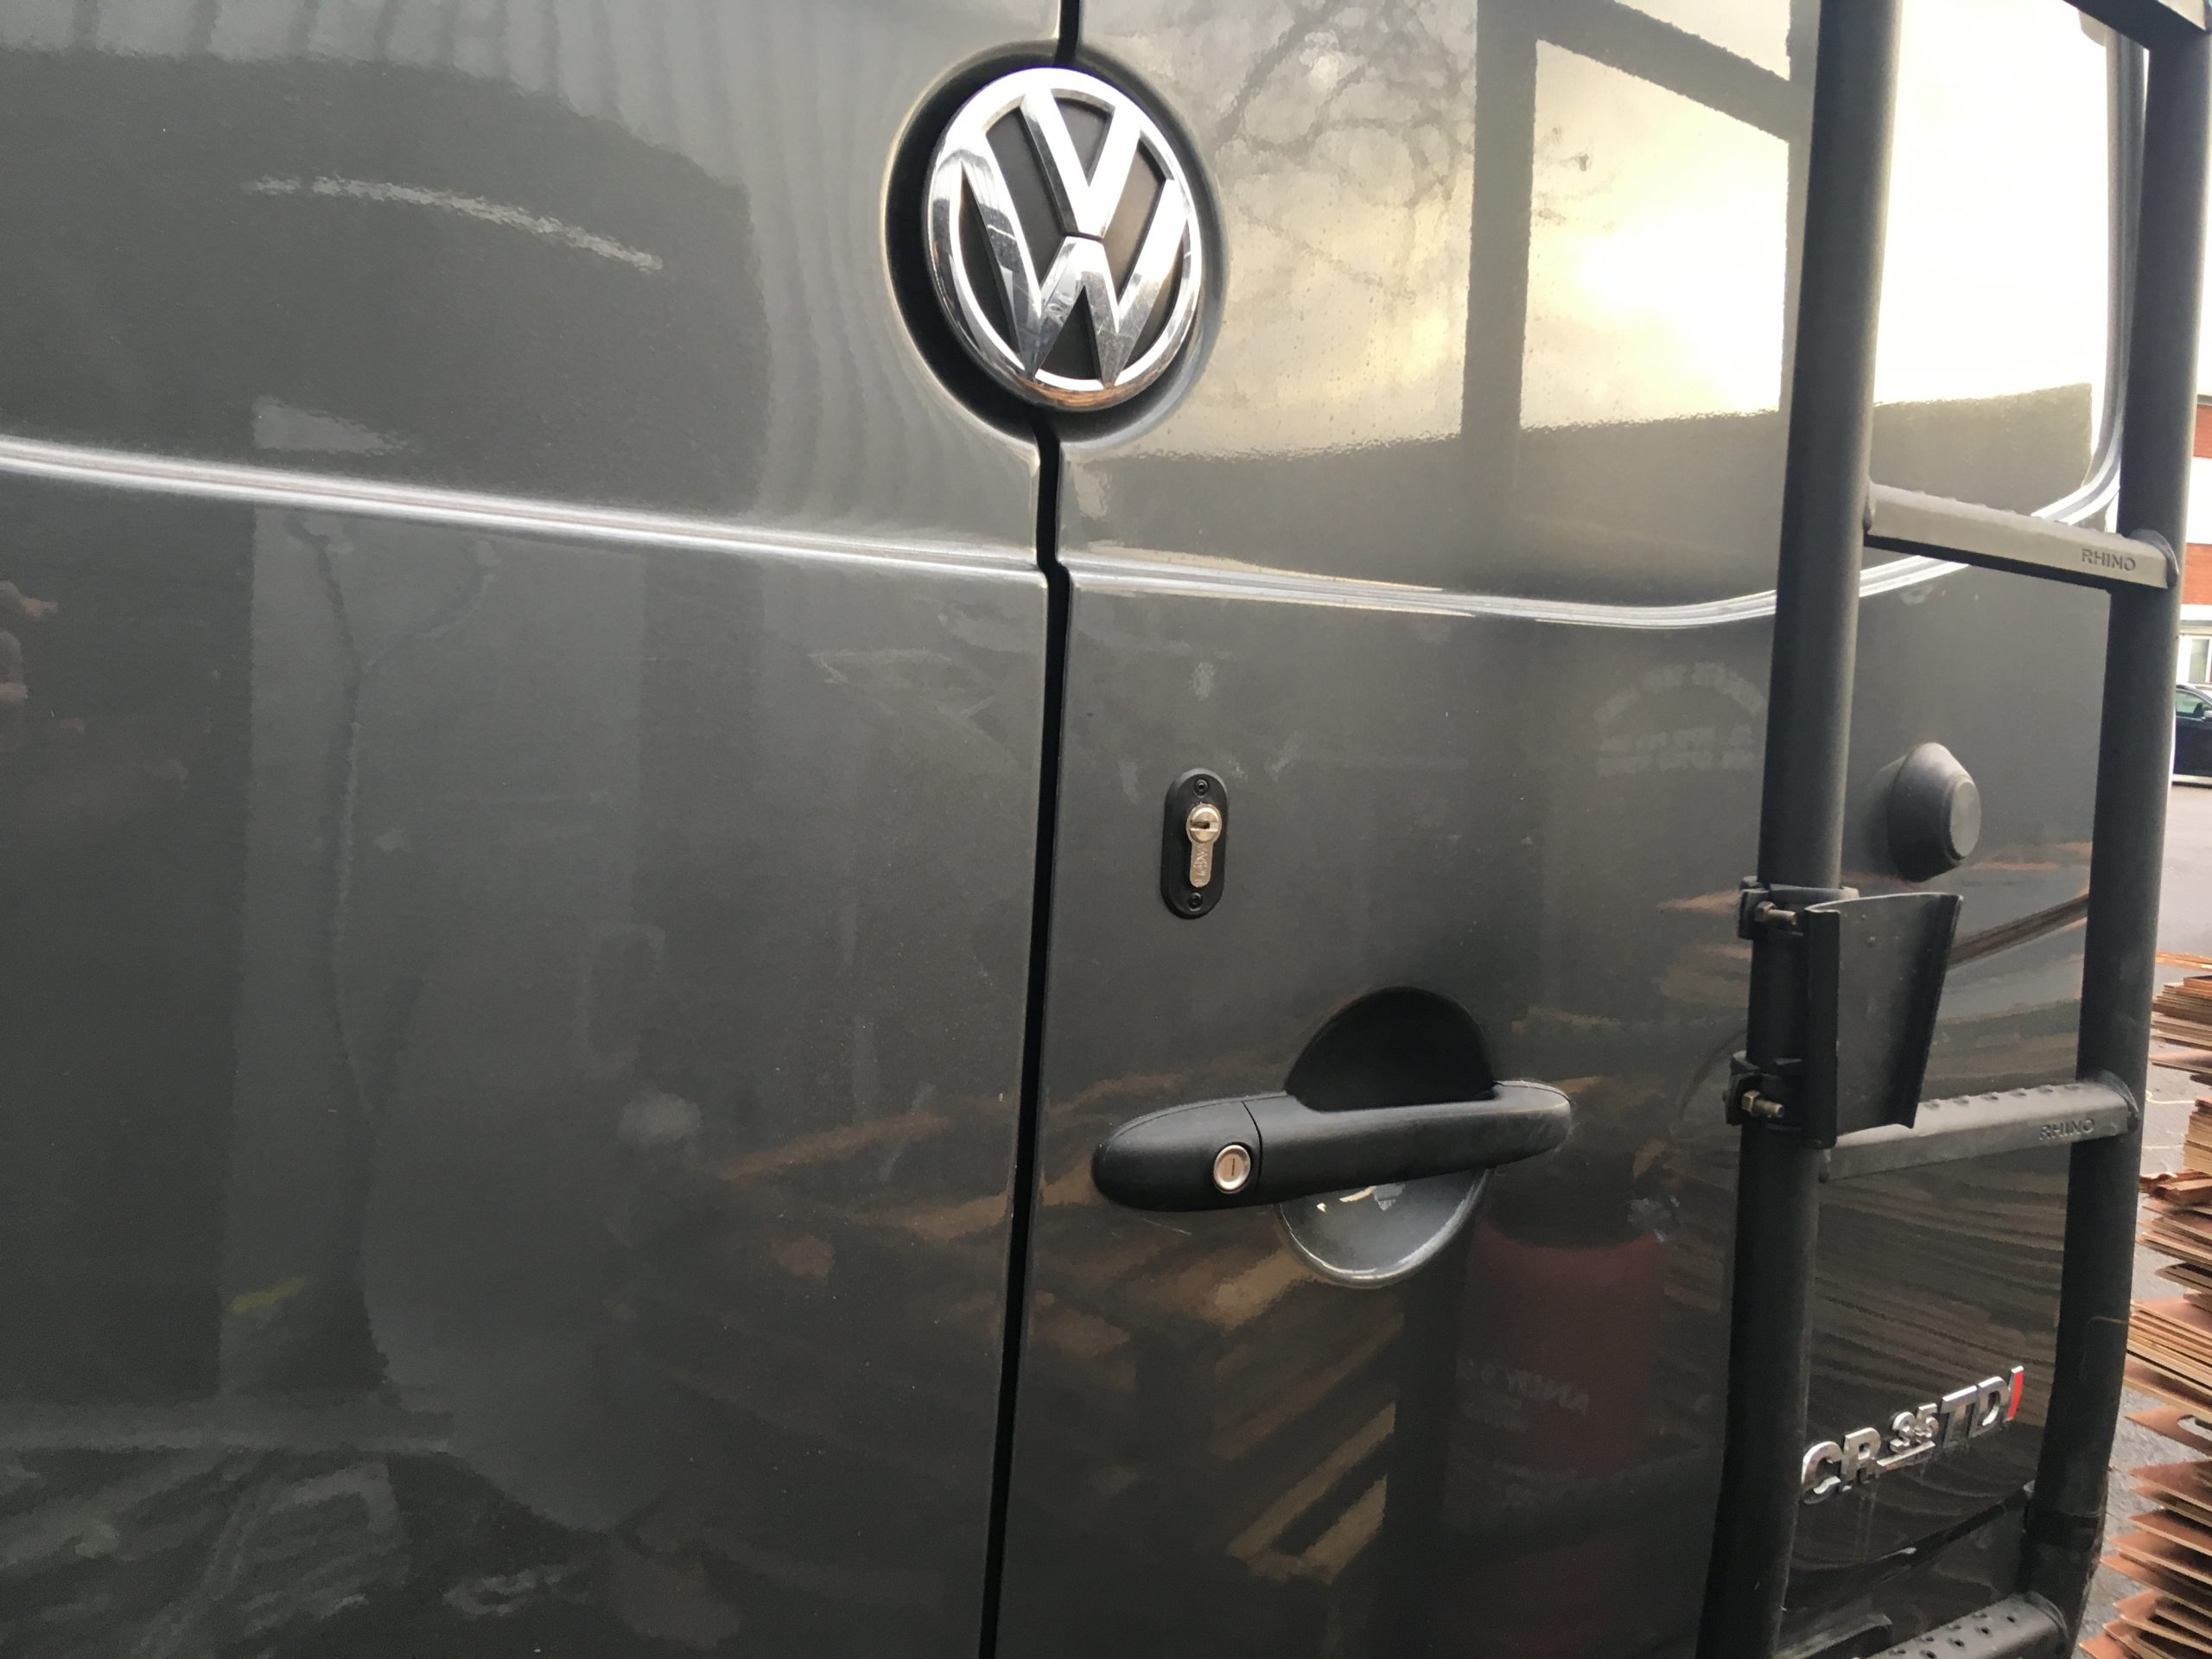 VW crafter deadlock and rear ladder